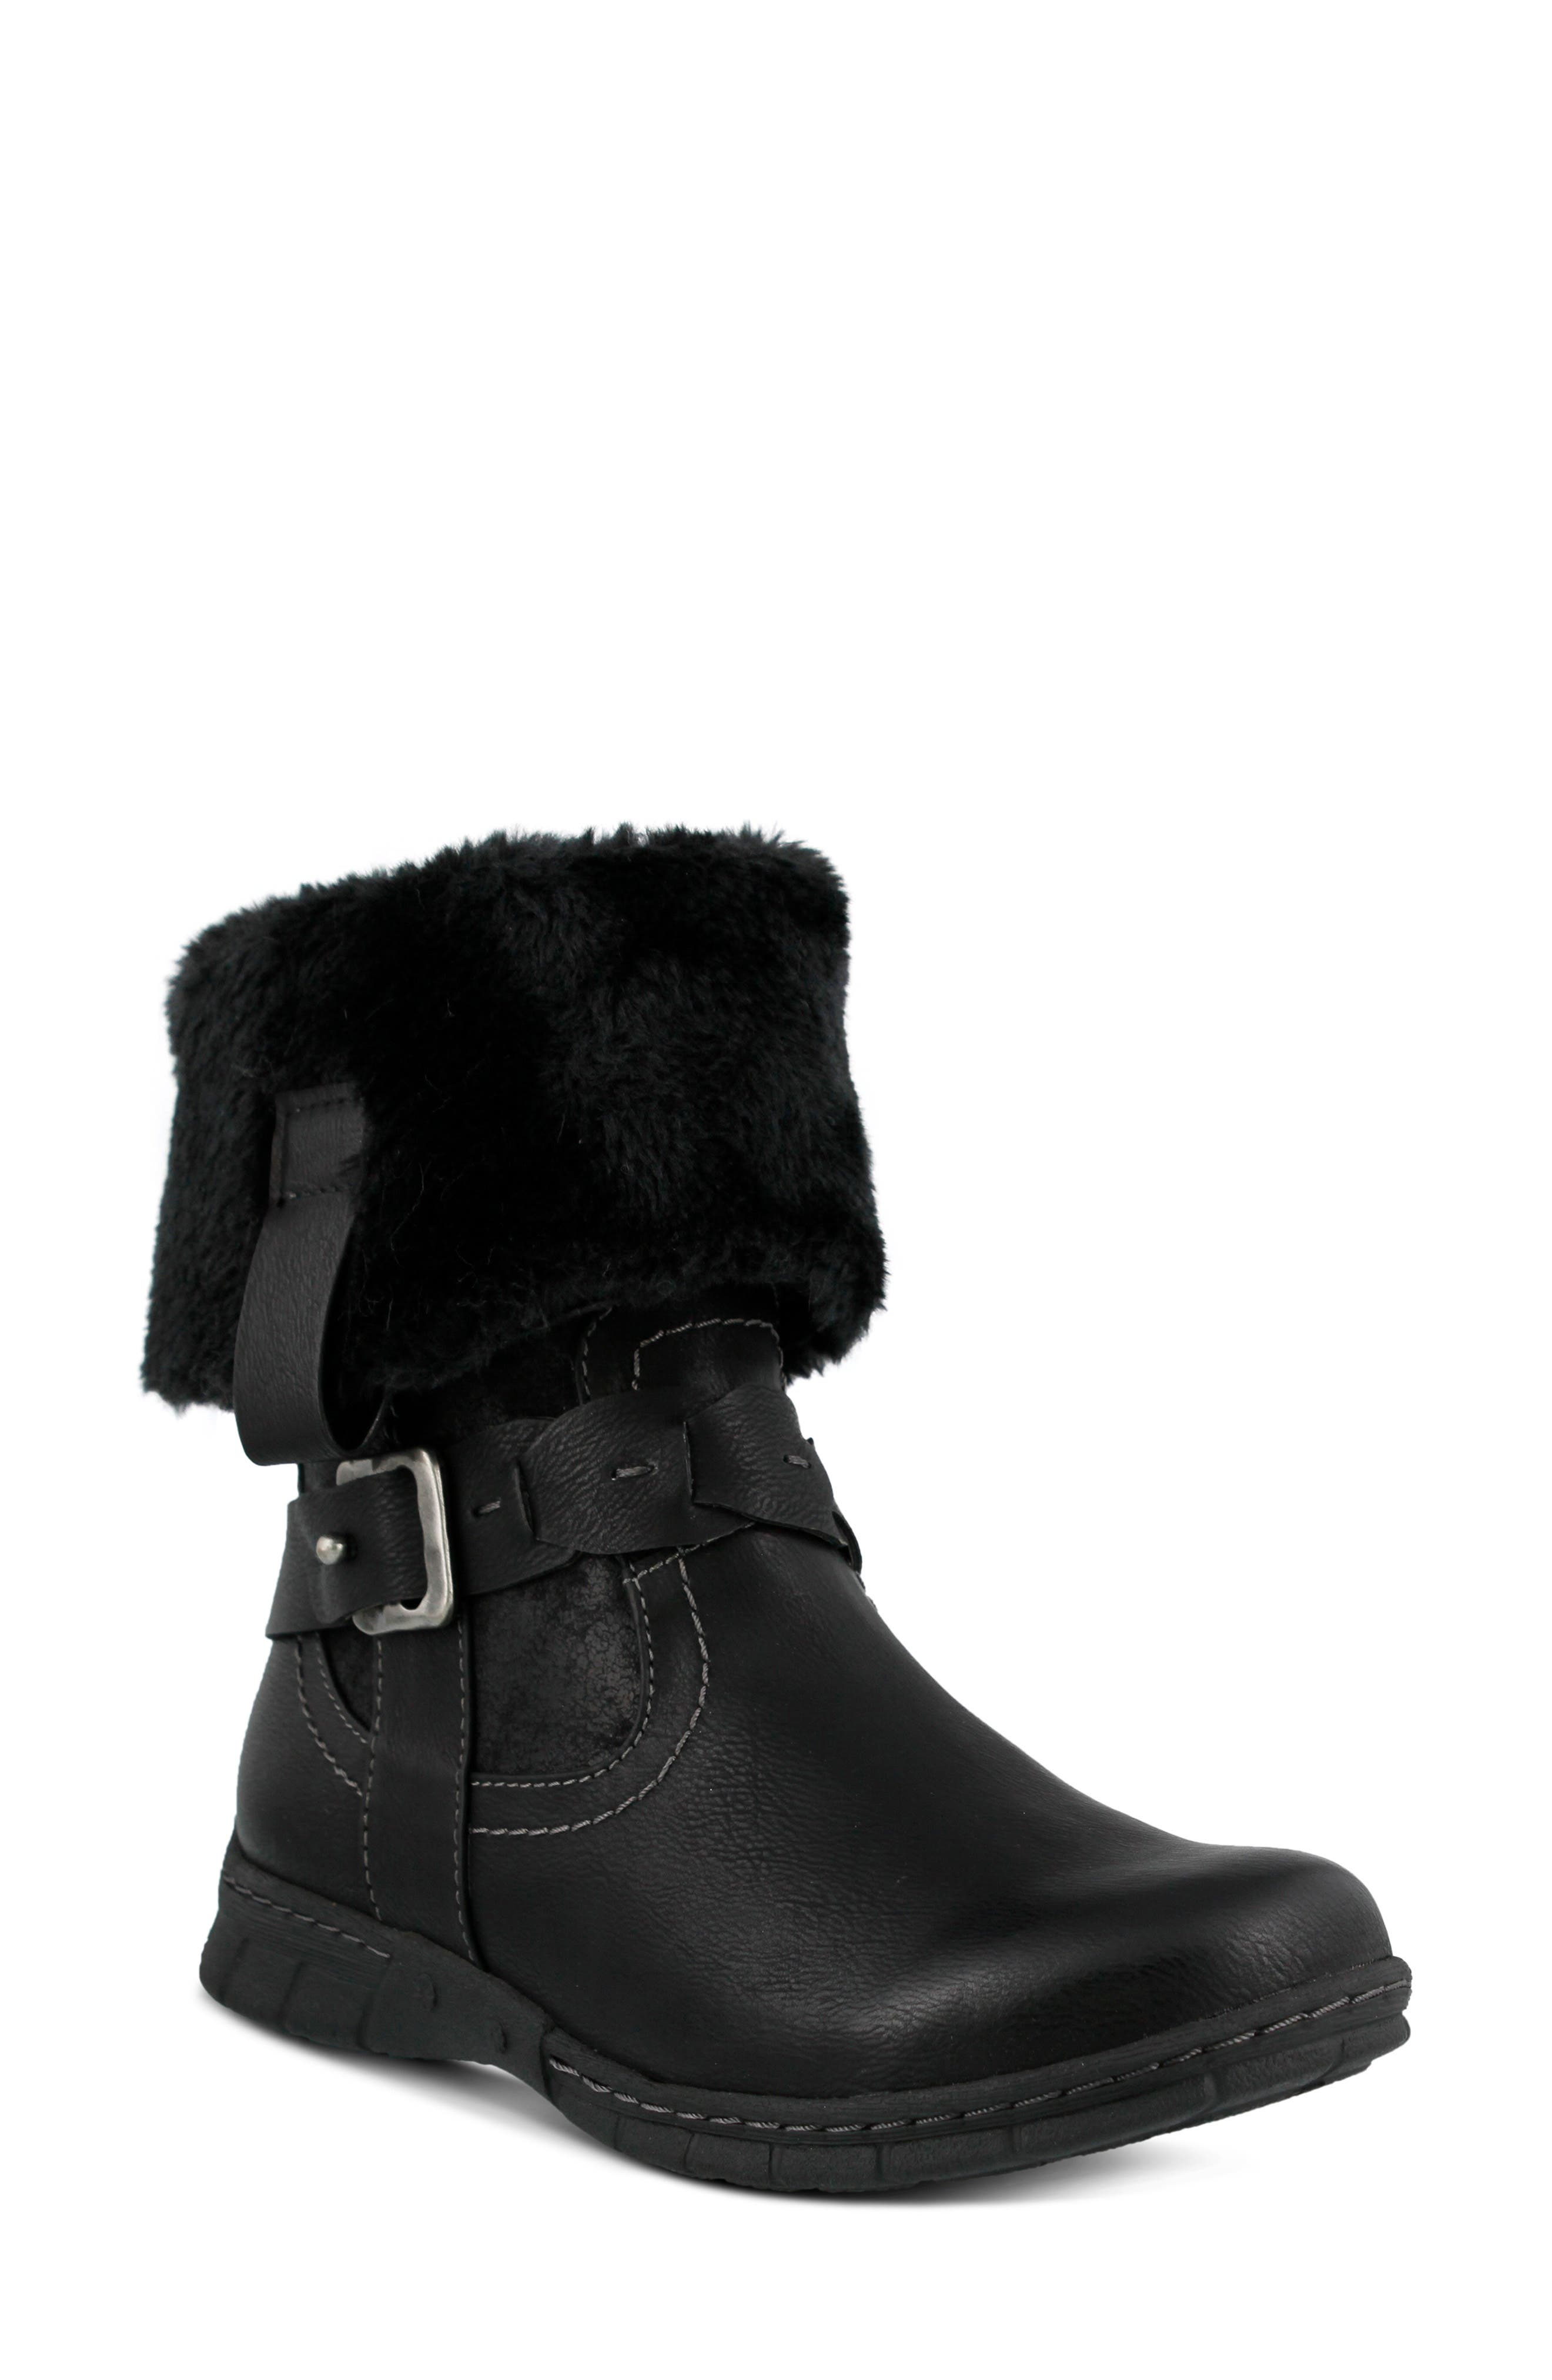 Spring Step Peeta Water Resistant Faux Fur Boot - Black